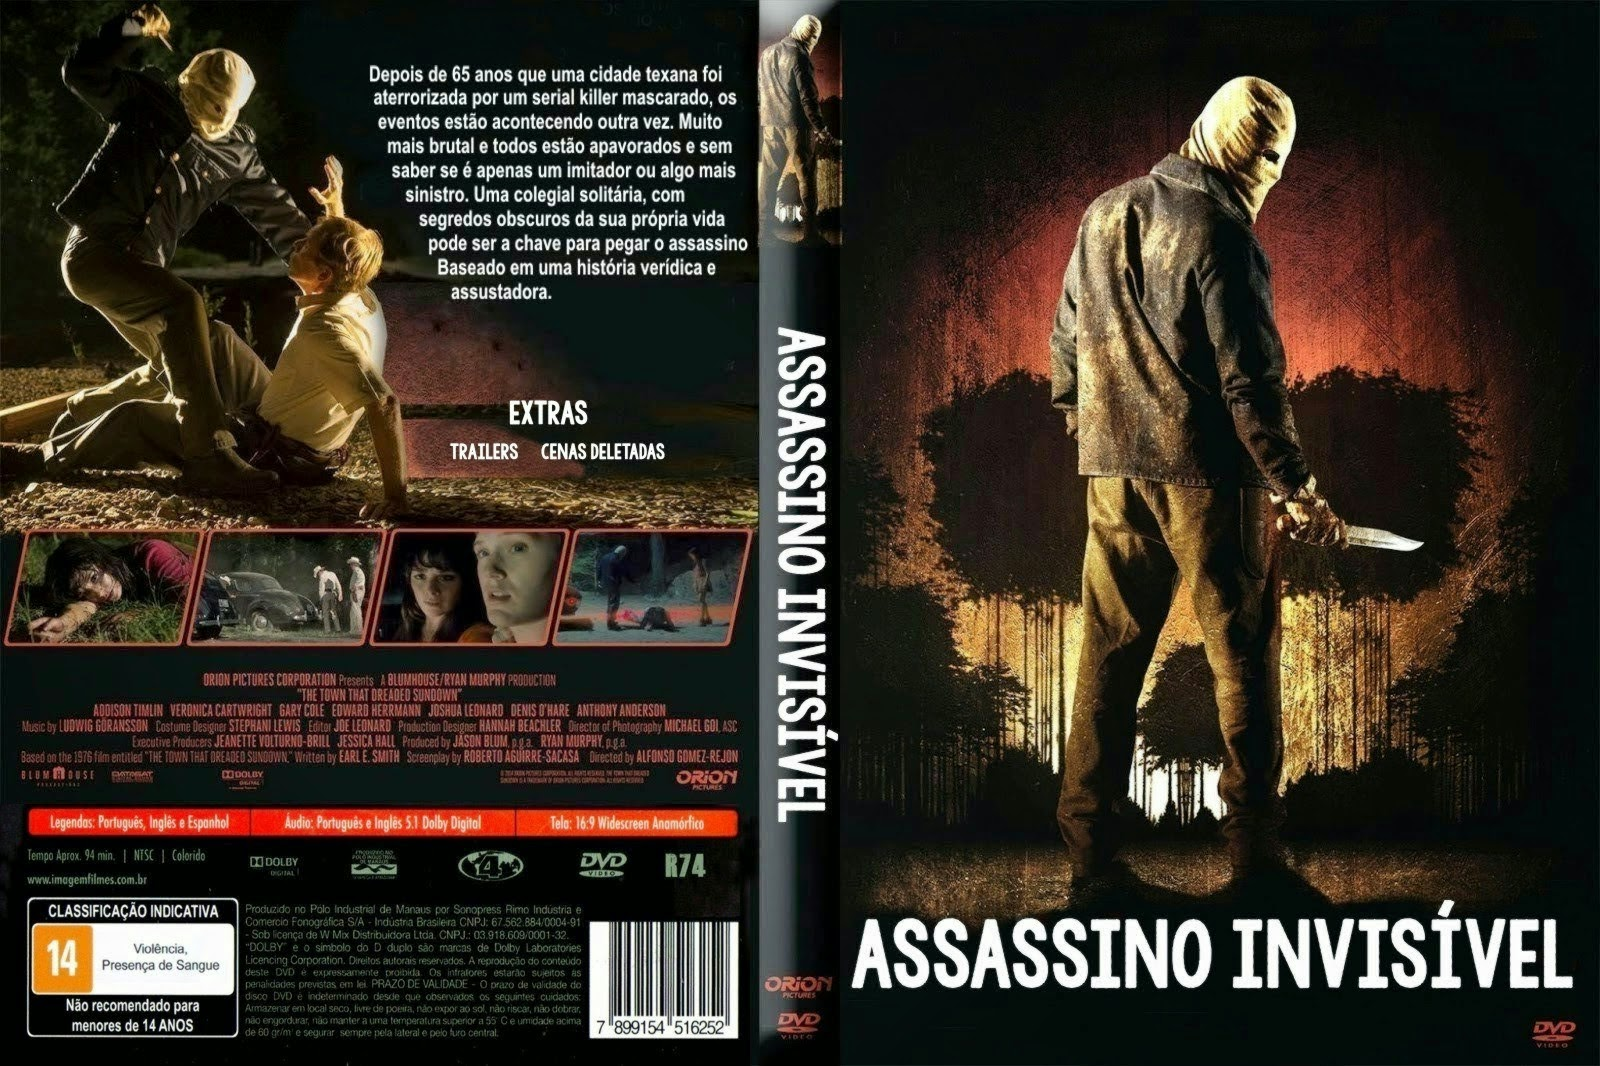 Baixar Assassino Invisível BDRip XviD Dual Áudio Assassino 2BInvisivel